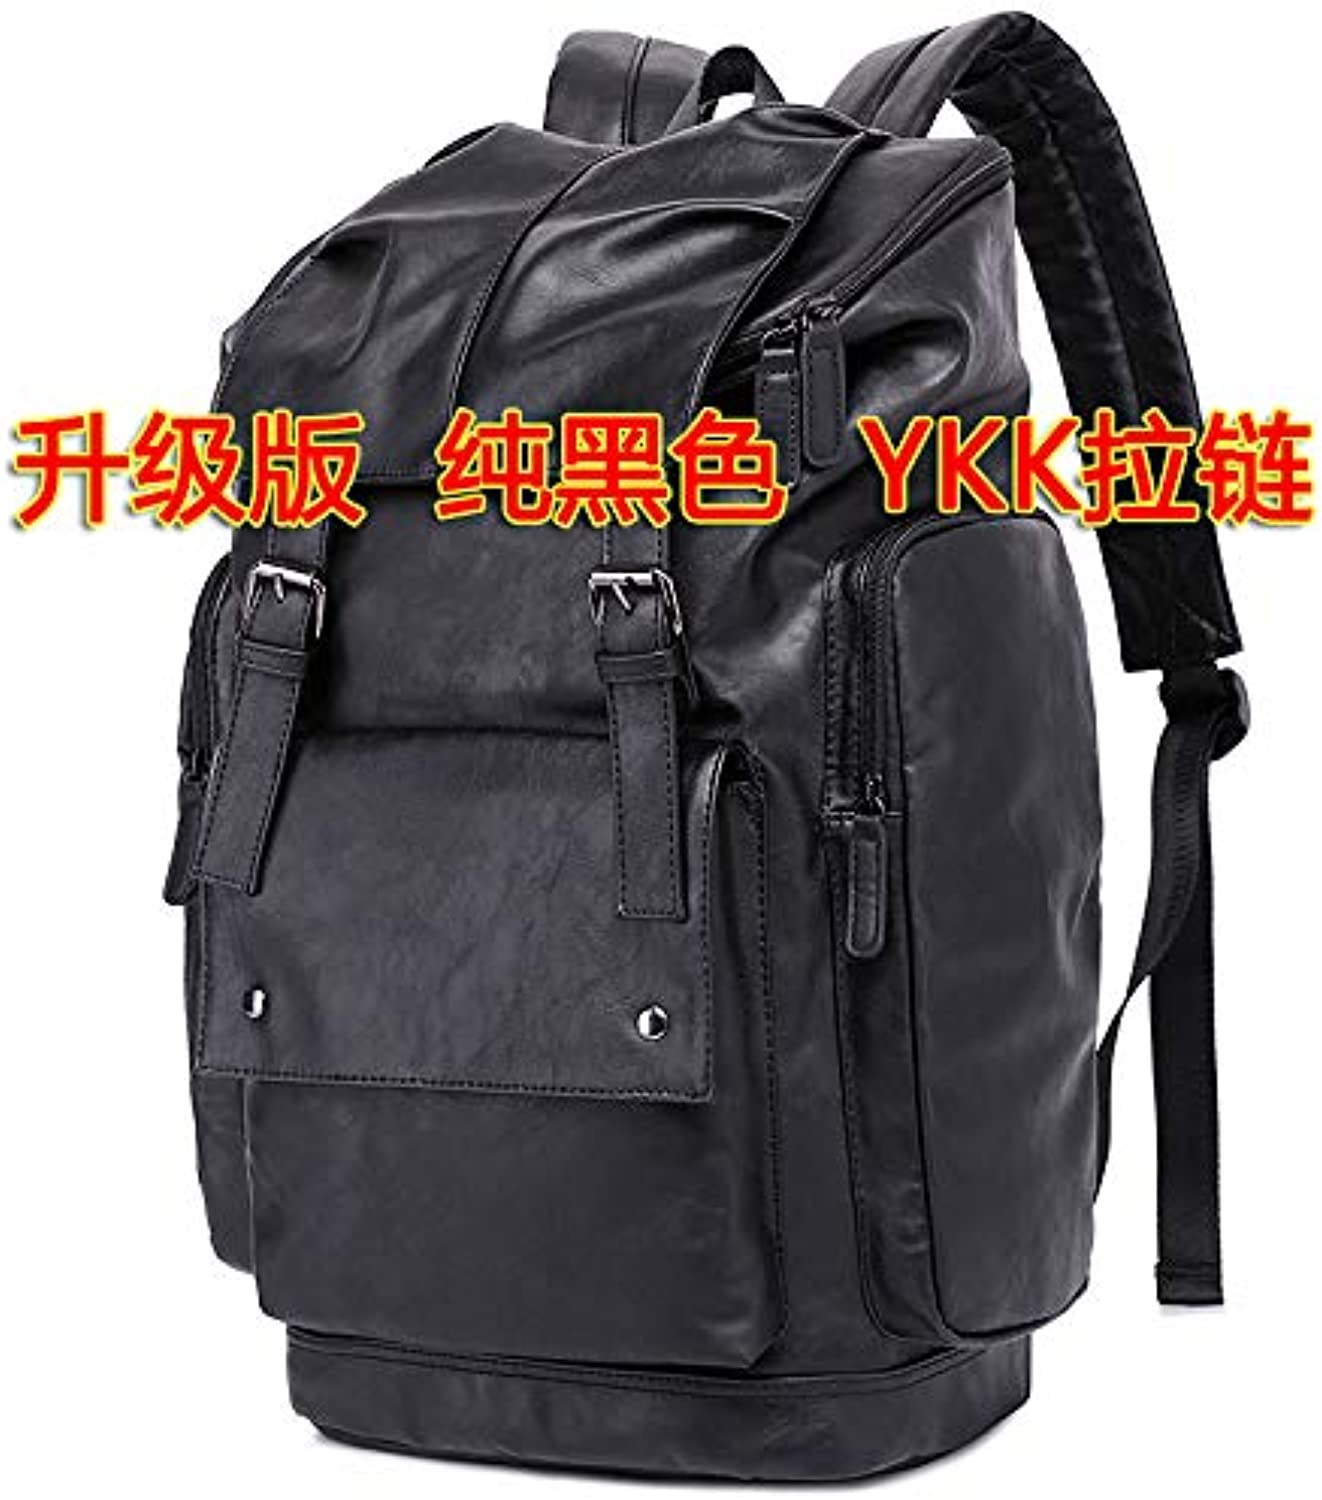 Men's Backpack Shoulder Bag Korean Version of The Outdoor Men's Bag LargeCapacity Travel Bag Fashion Trend Travel Leisure Book Bag